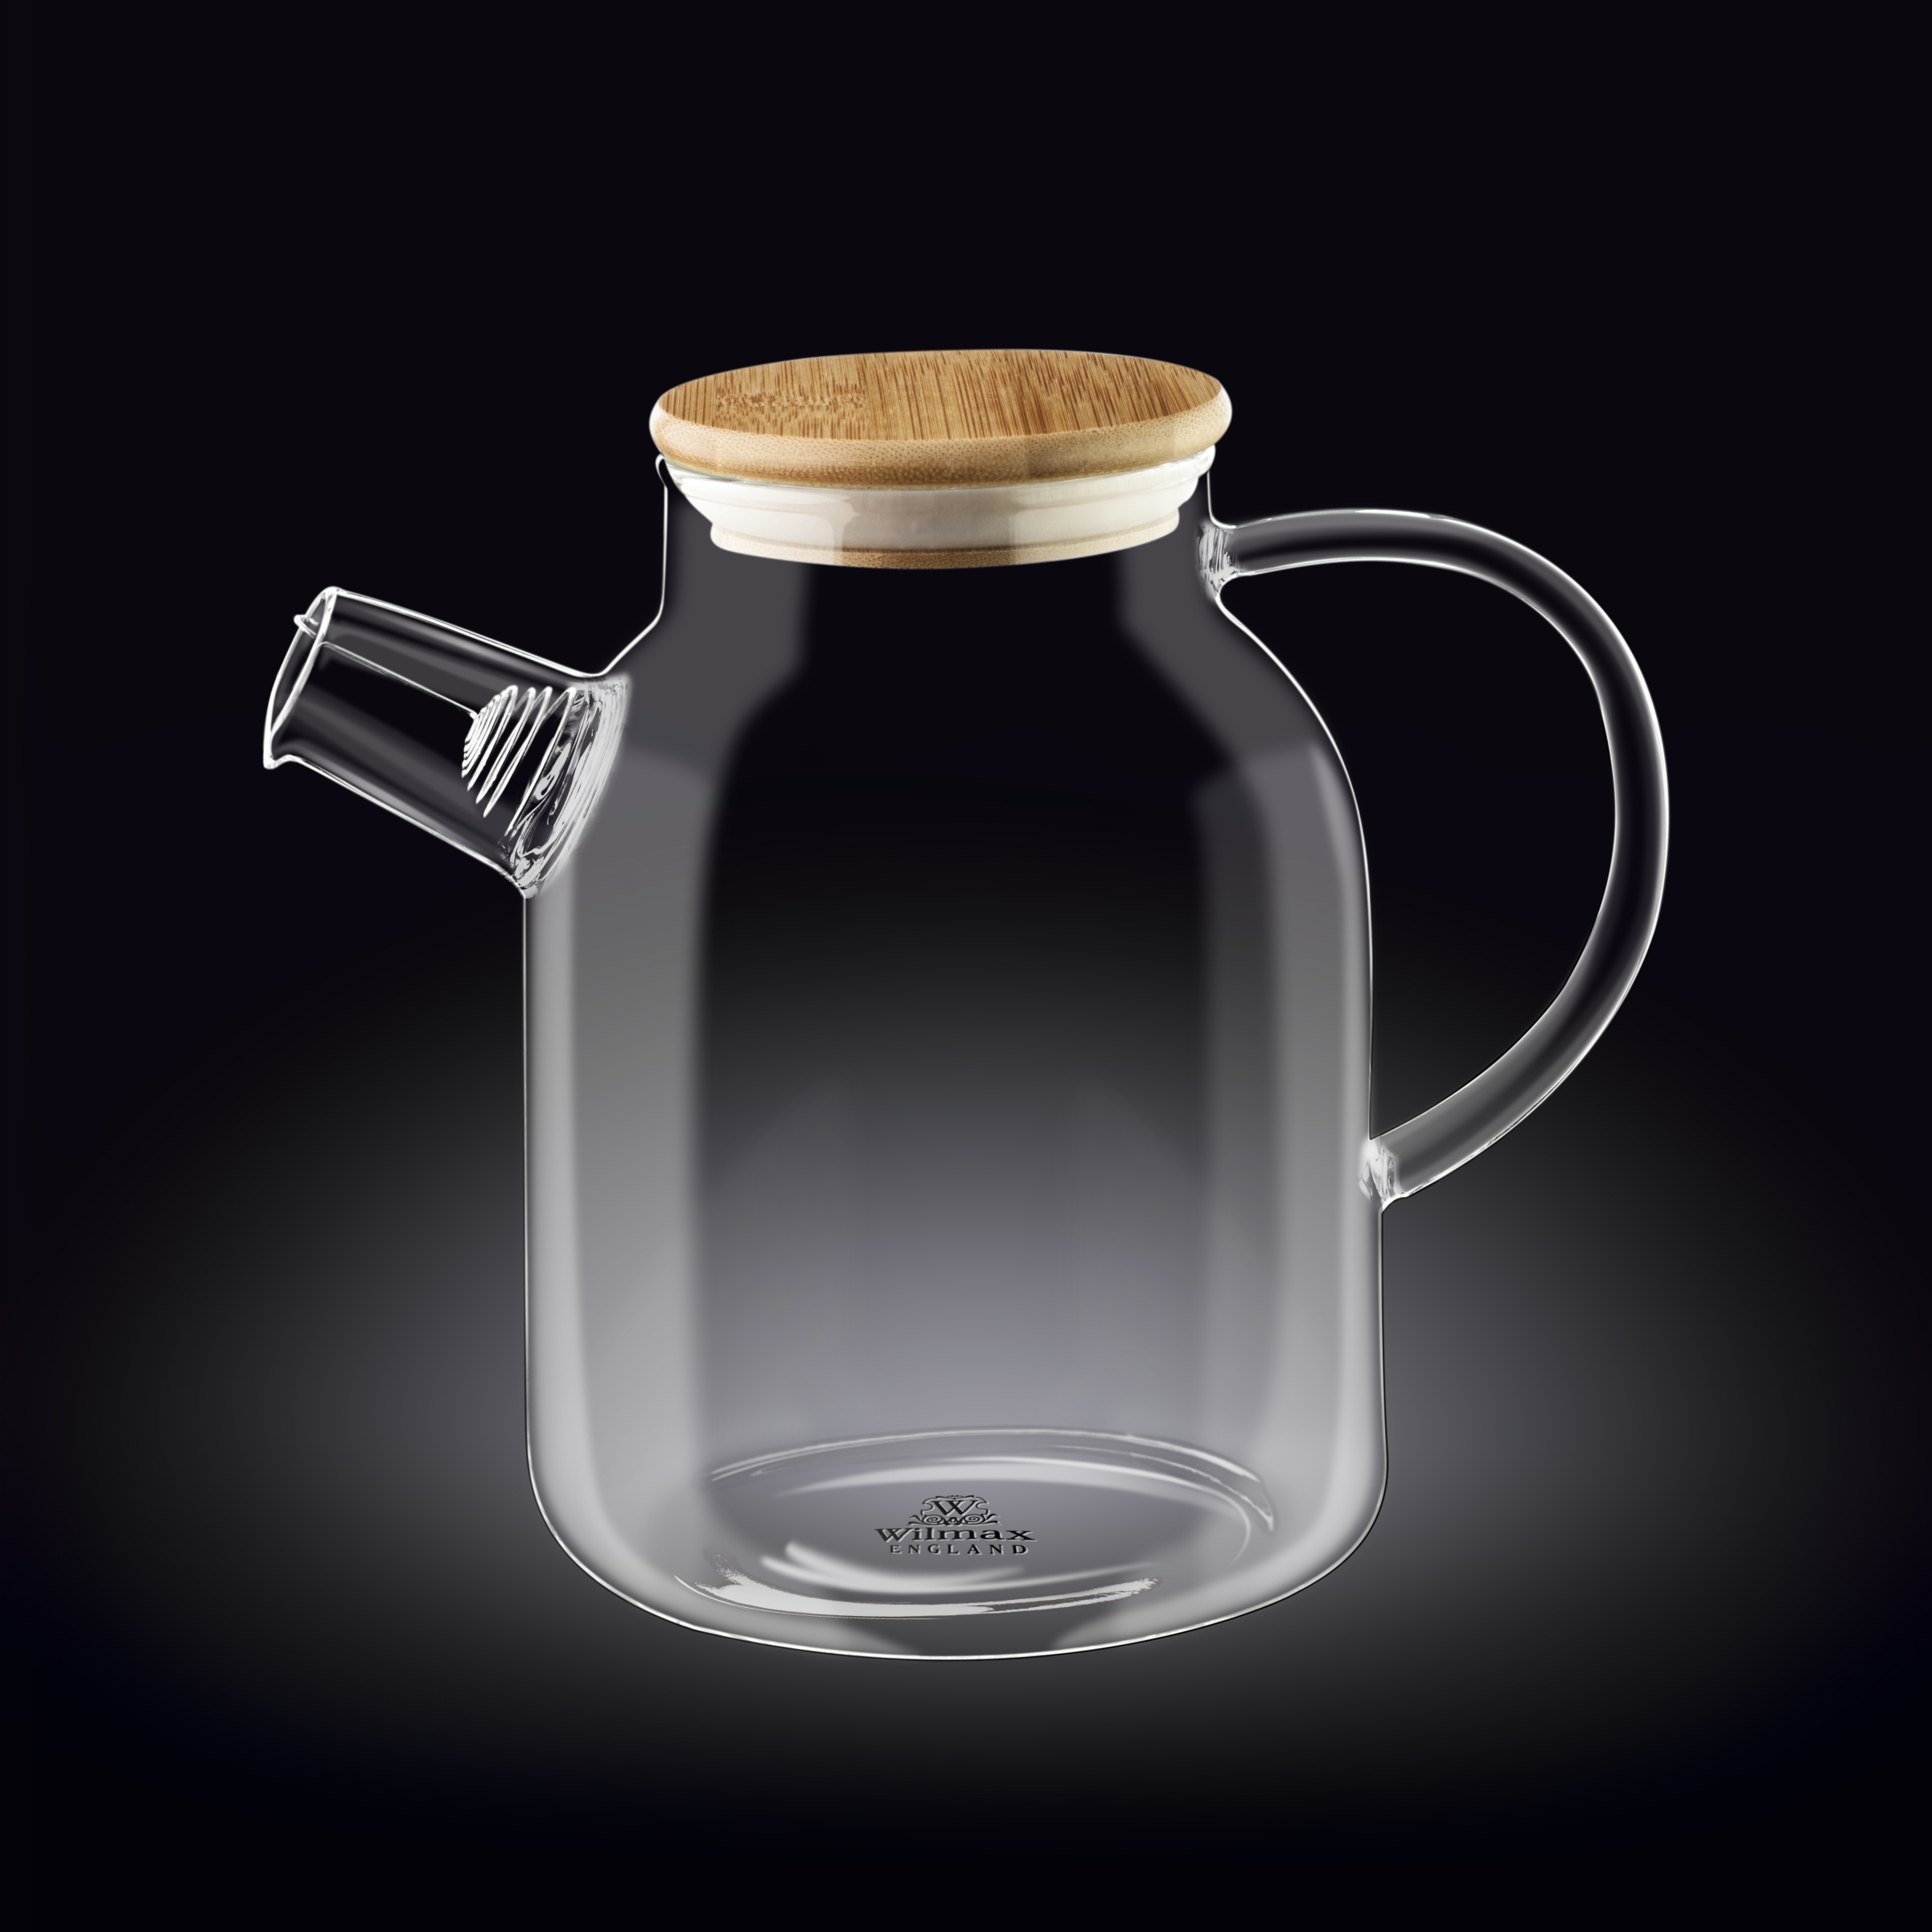 tea pot 54 fl oz  1600 ml